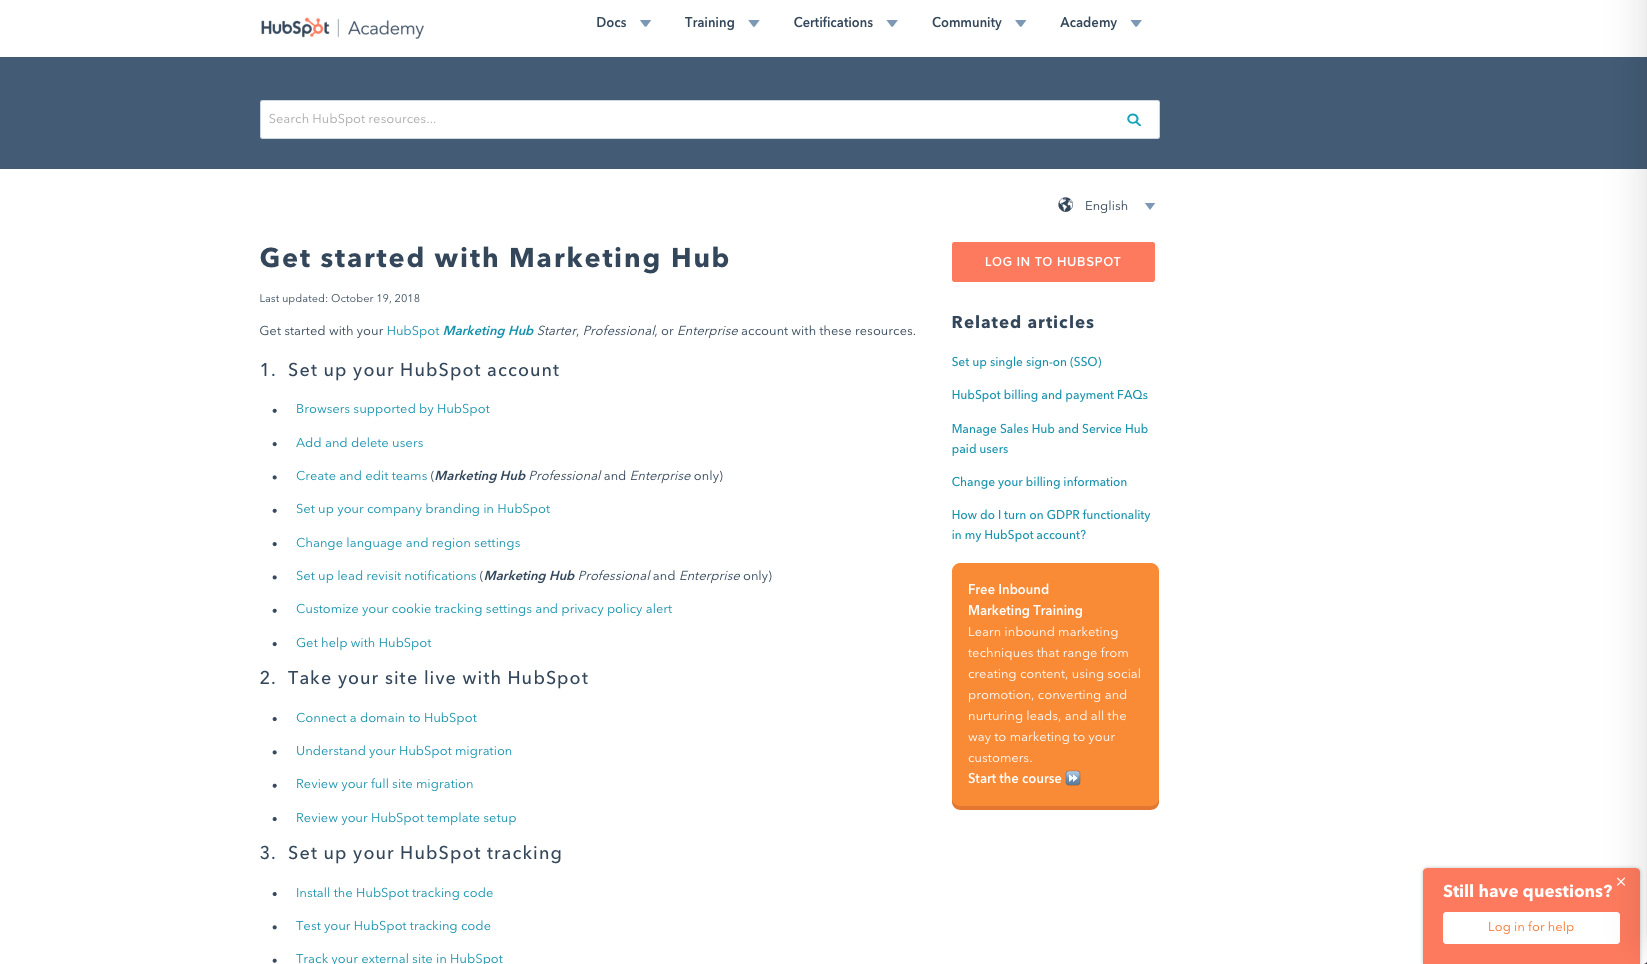 HubSpot Knowledge Academy